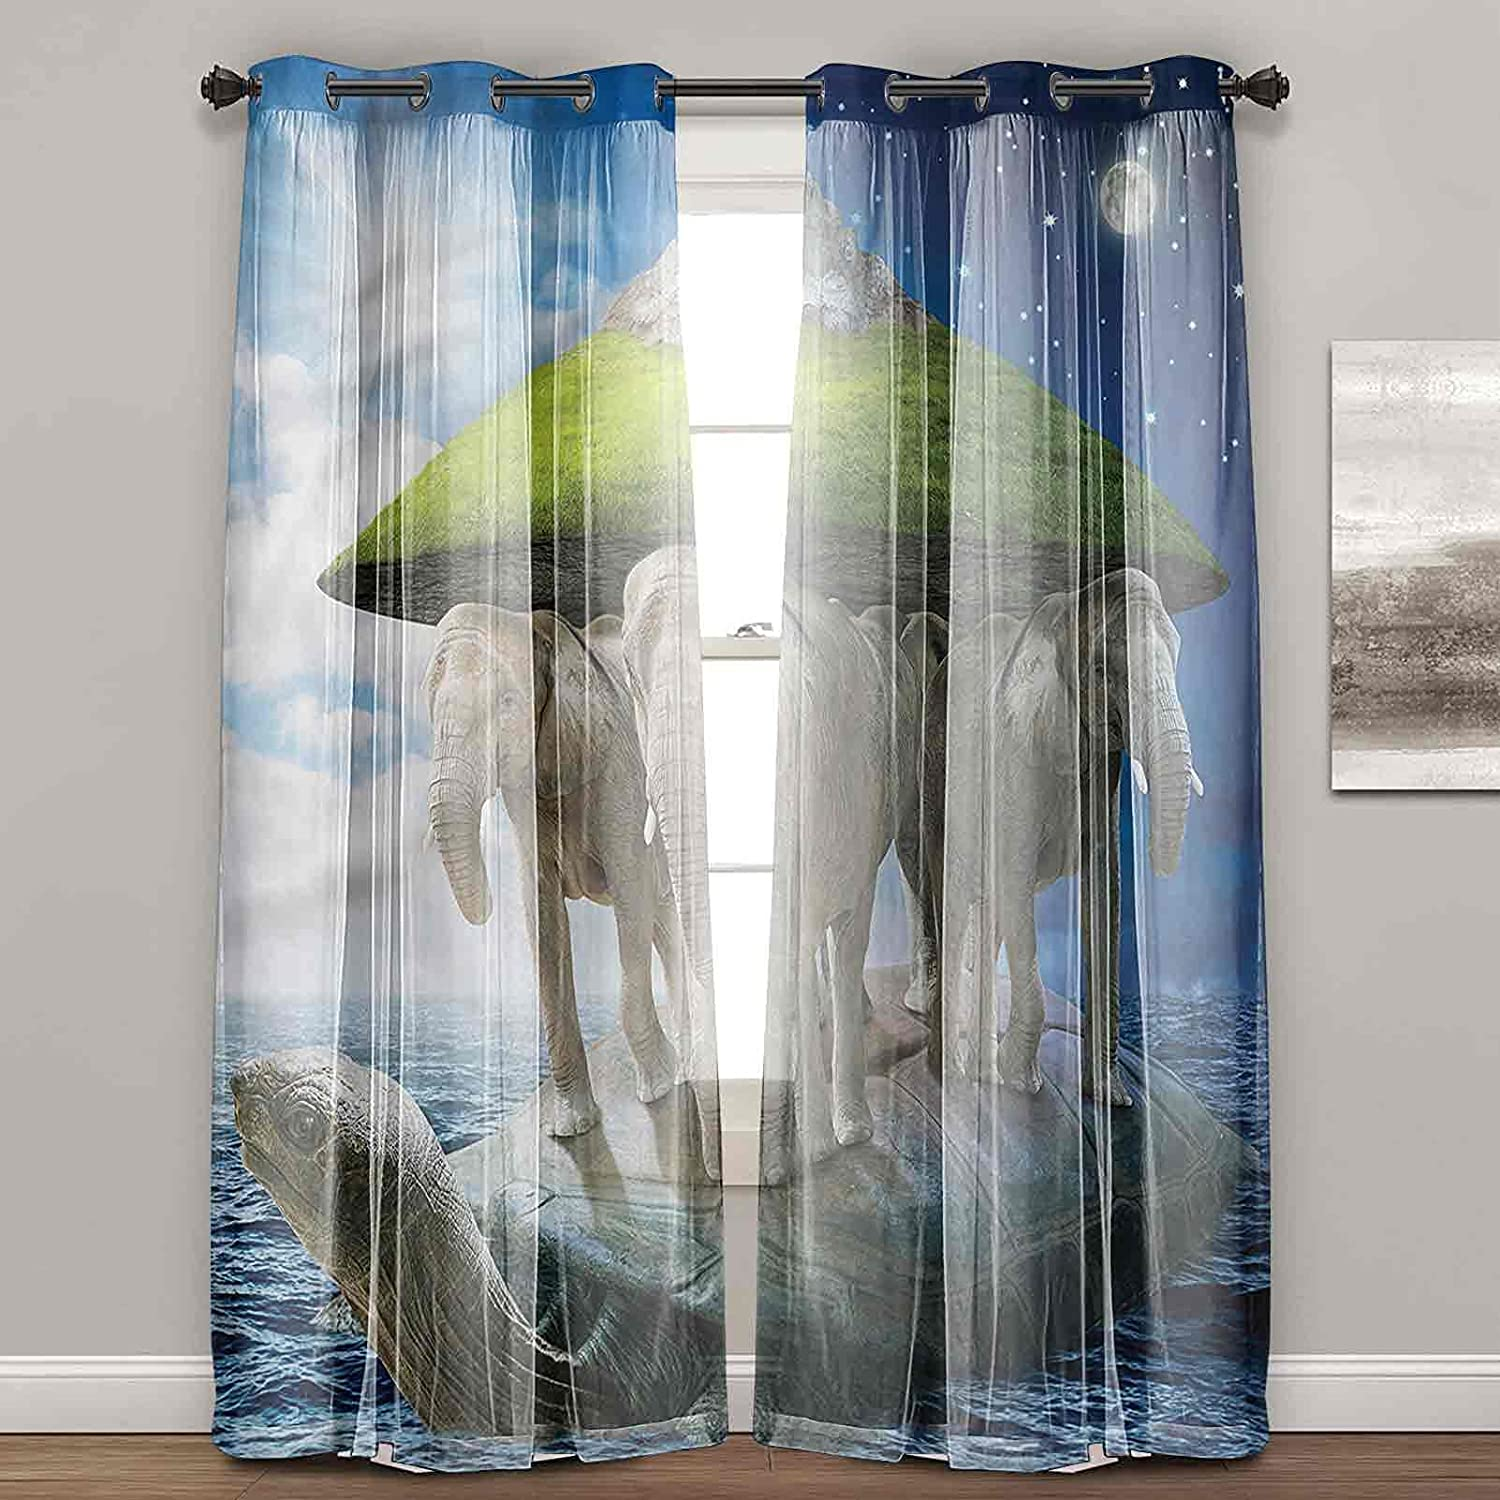 Curtains for Bedroom Fantasy Turtle 70% OFF Outlet Drapes s Livi Bombing free shipping Carrying